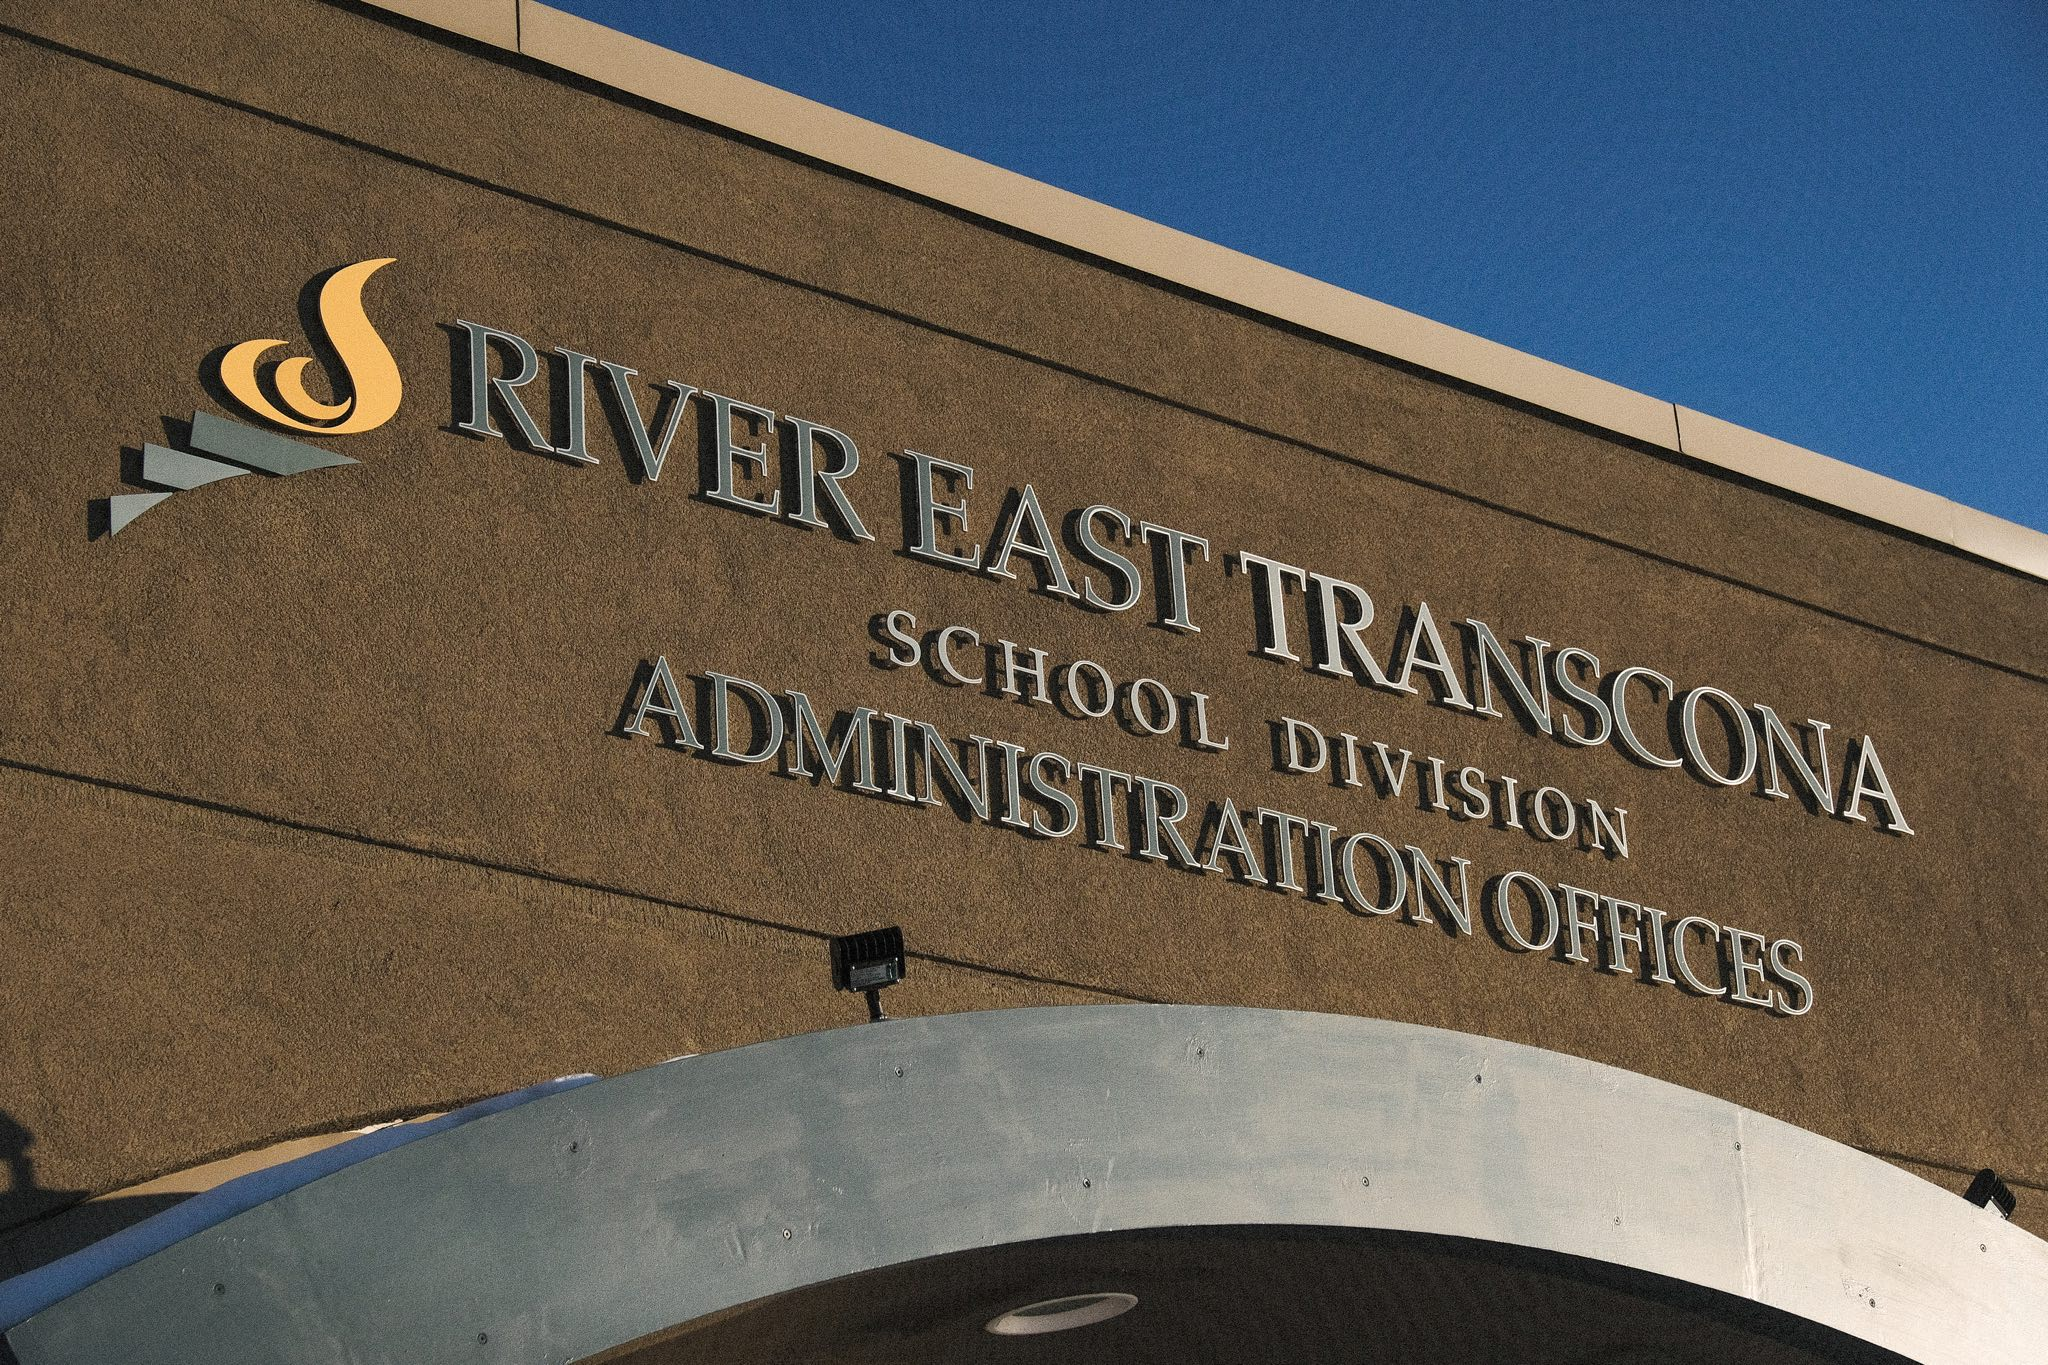 Though students at Kildonan-East Collegiate have expressed safety concerns, a spokesperson for the River East Transcona School Division indicated the TikTok trend has not been an issue in its schools.